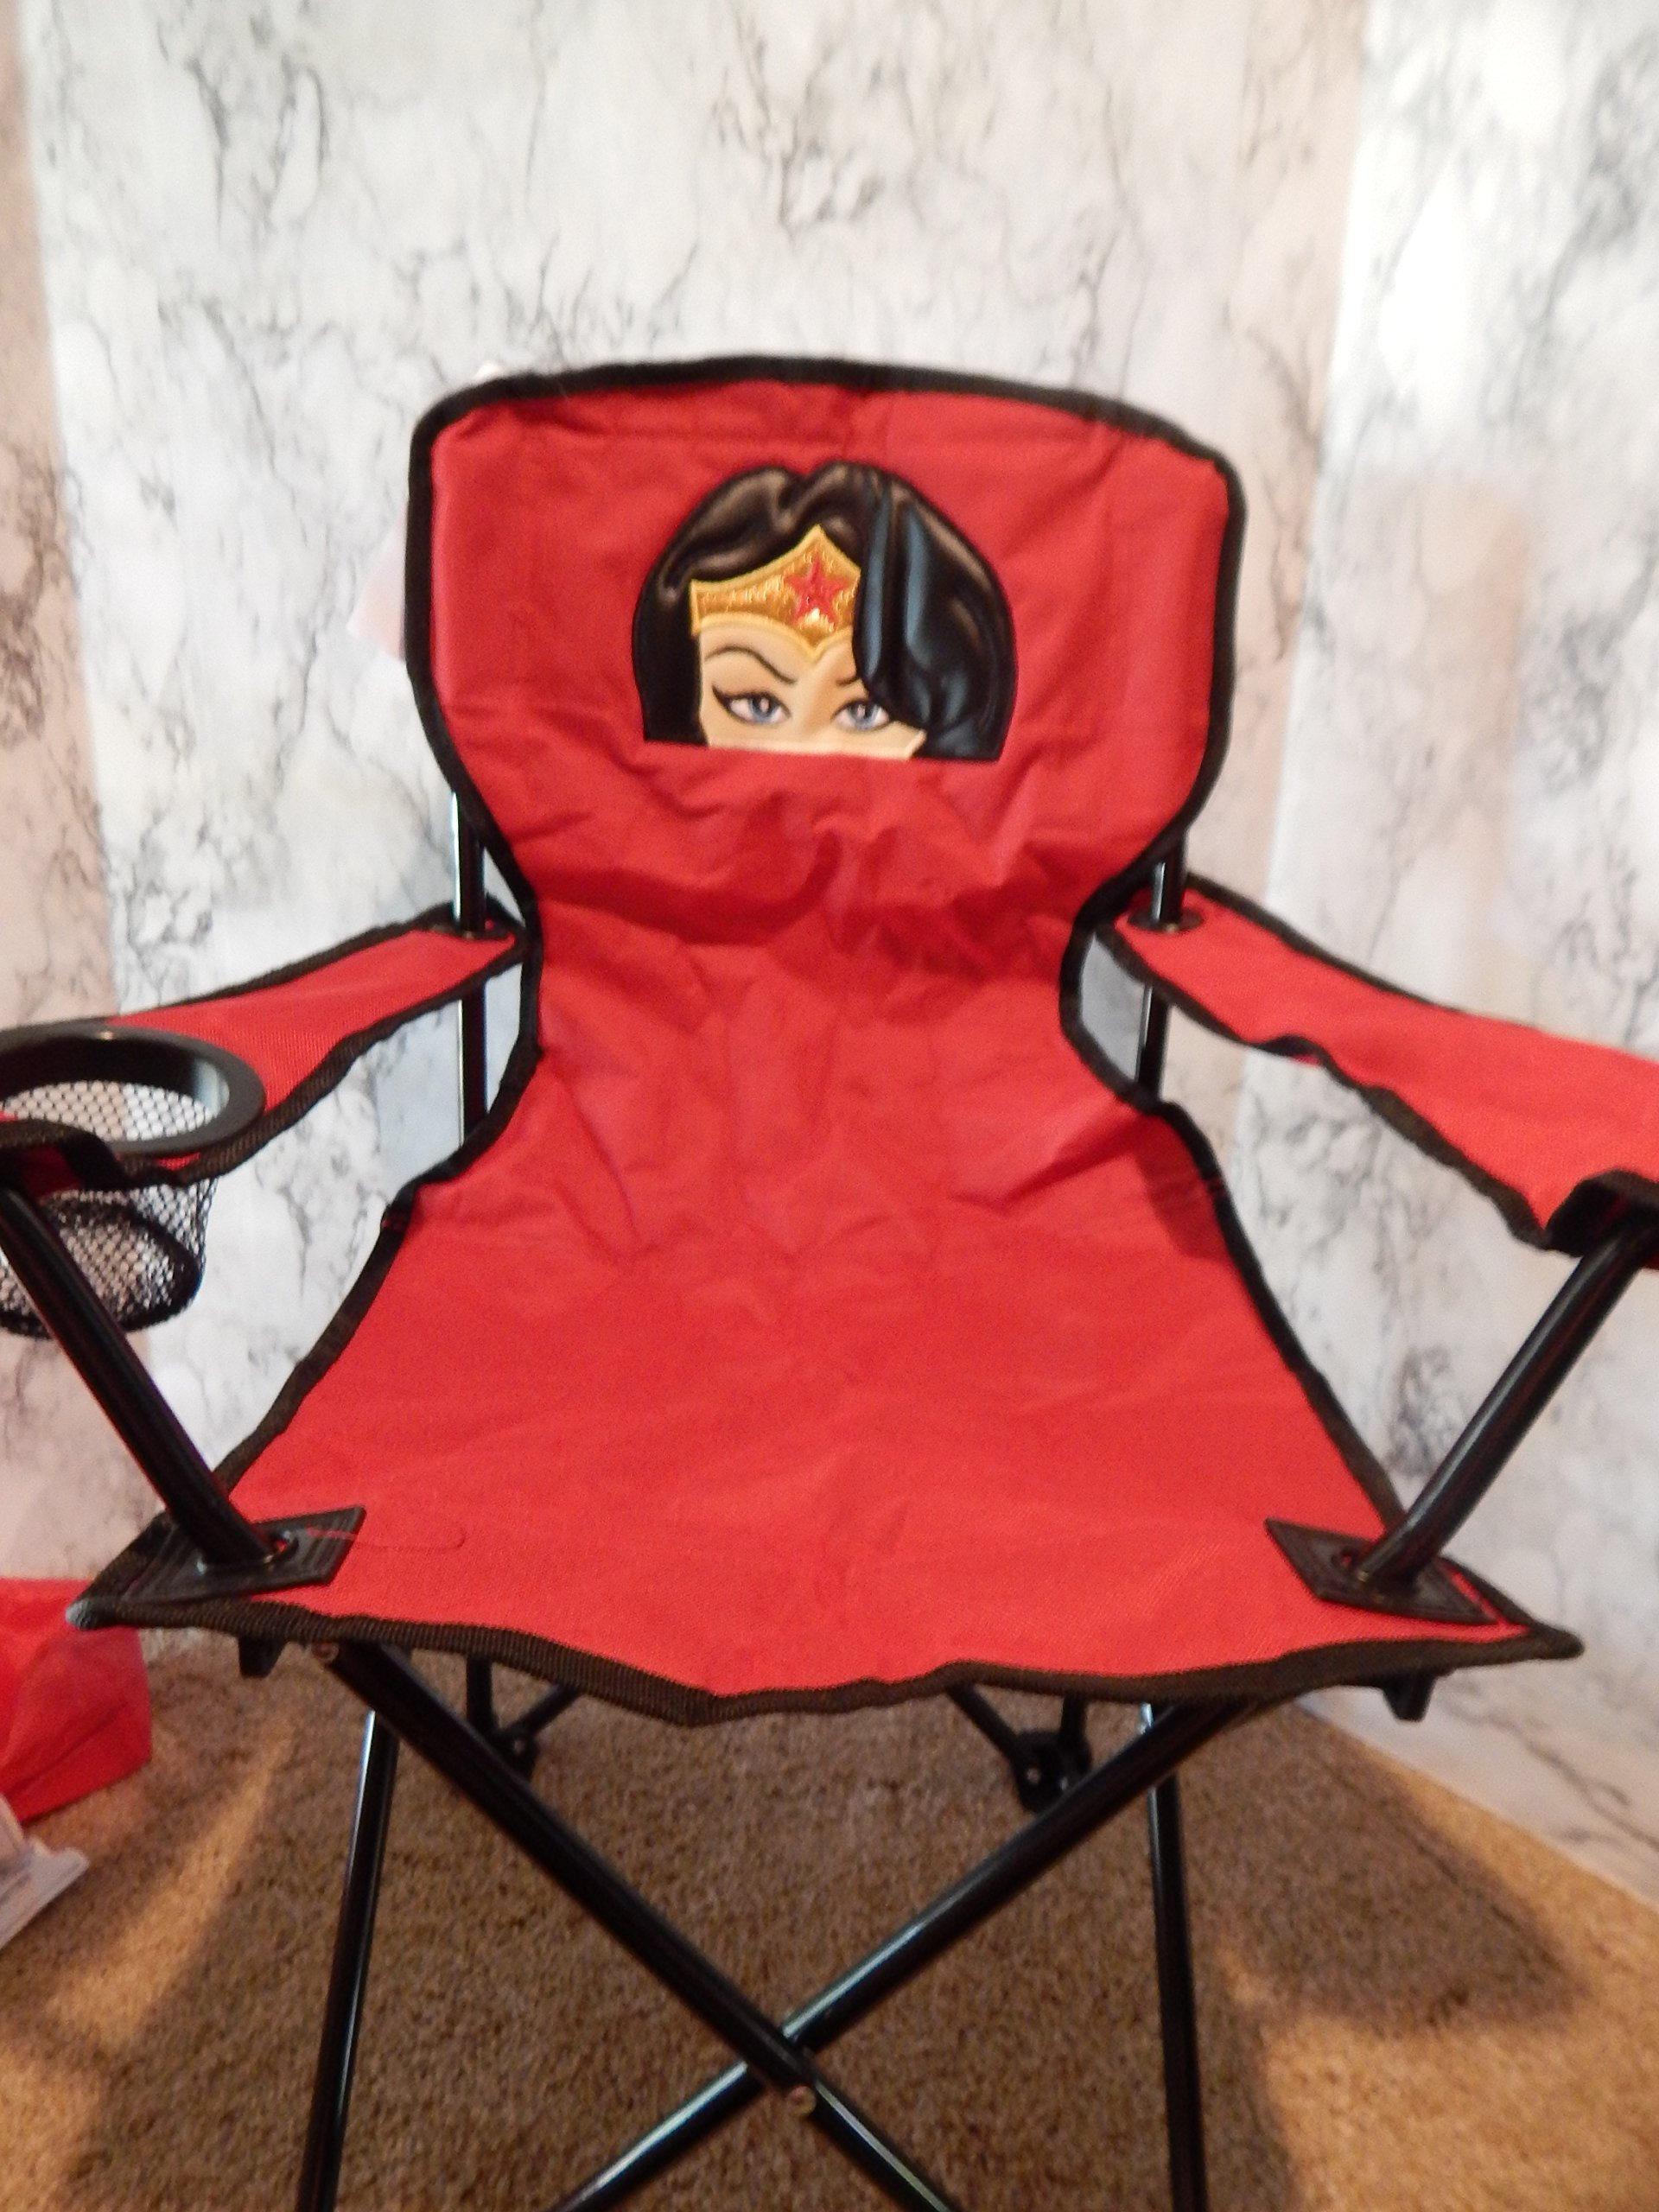 Personalized Amazing Woman Folding Chair (CHILD SIZE) by 3 Chicks Sewing